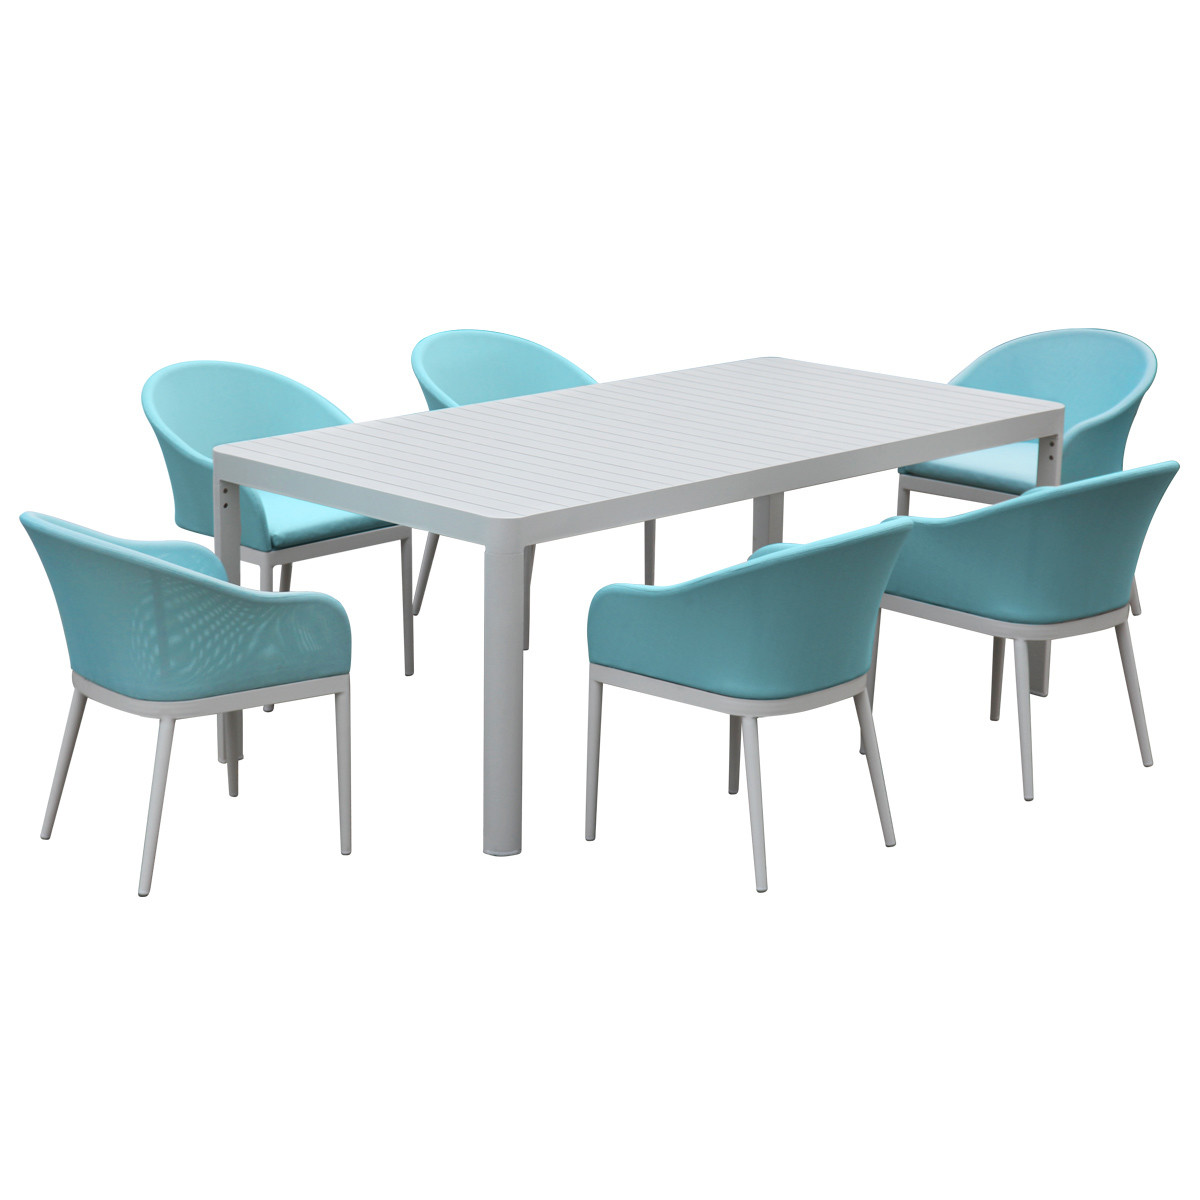 7 Pcs Outdoor Dining Set Chair Table Aluminum